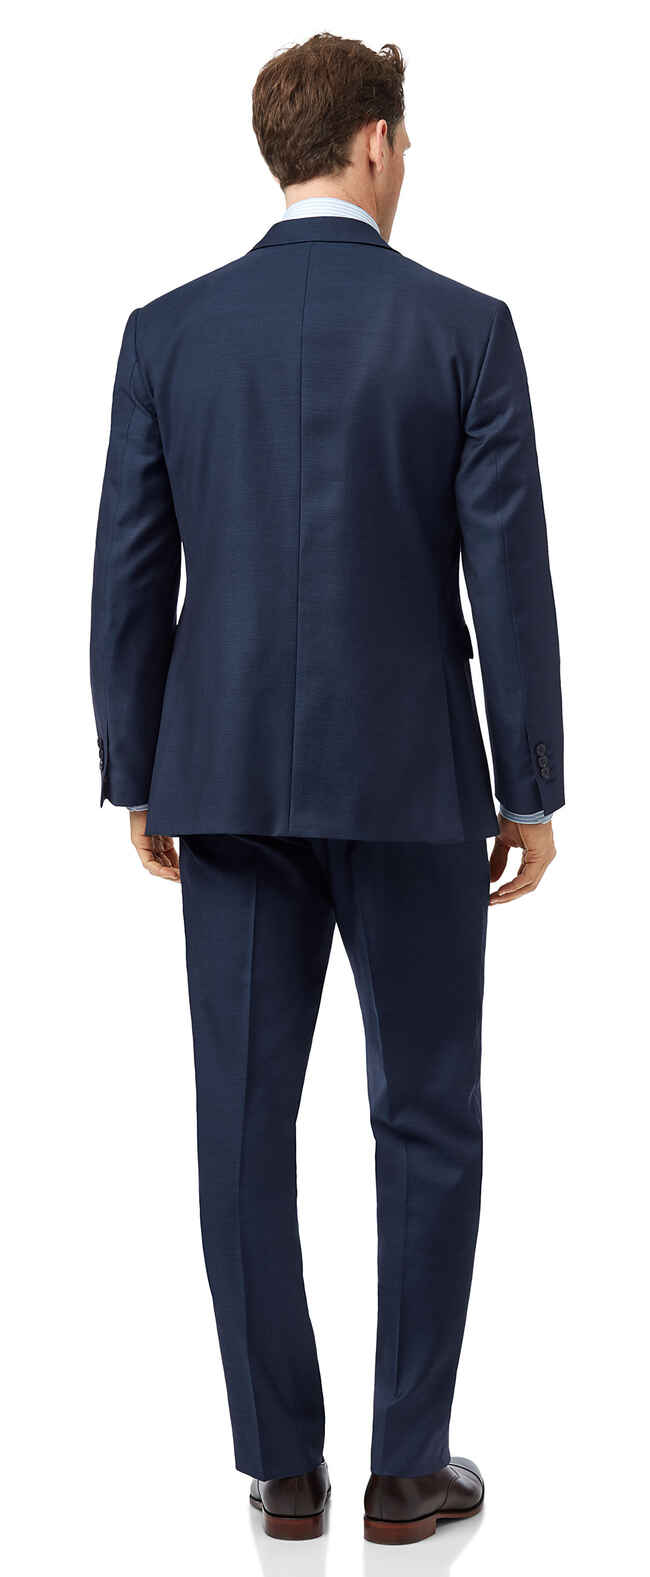 Classic Fit Business Anzug aus Twill in Blau